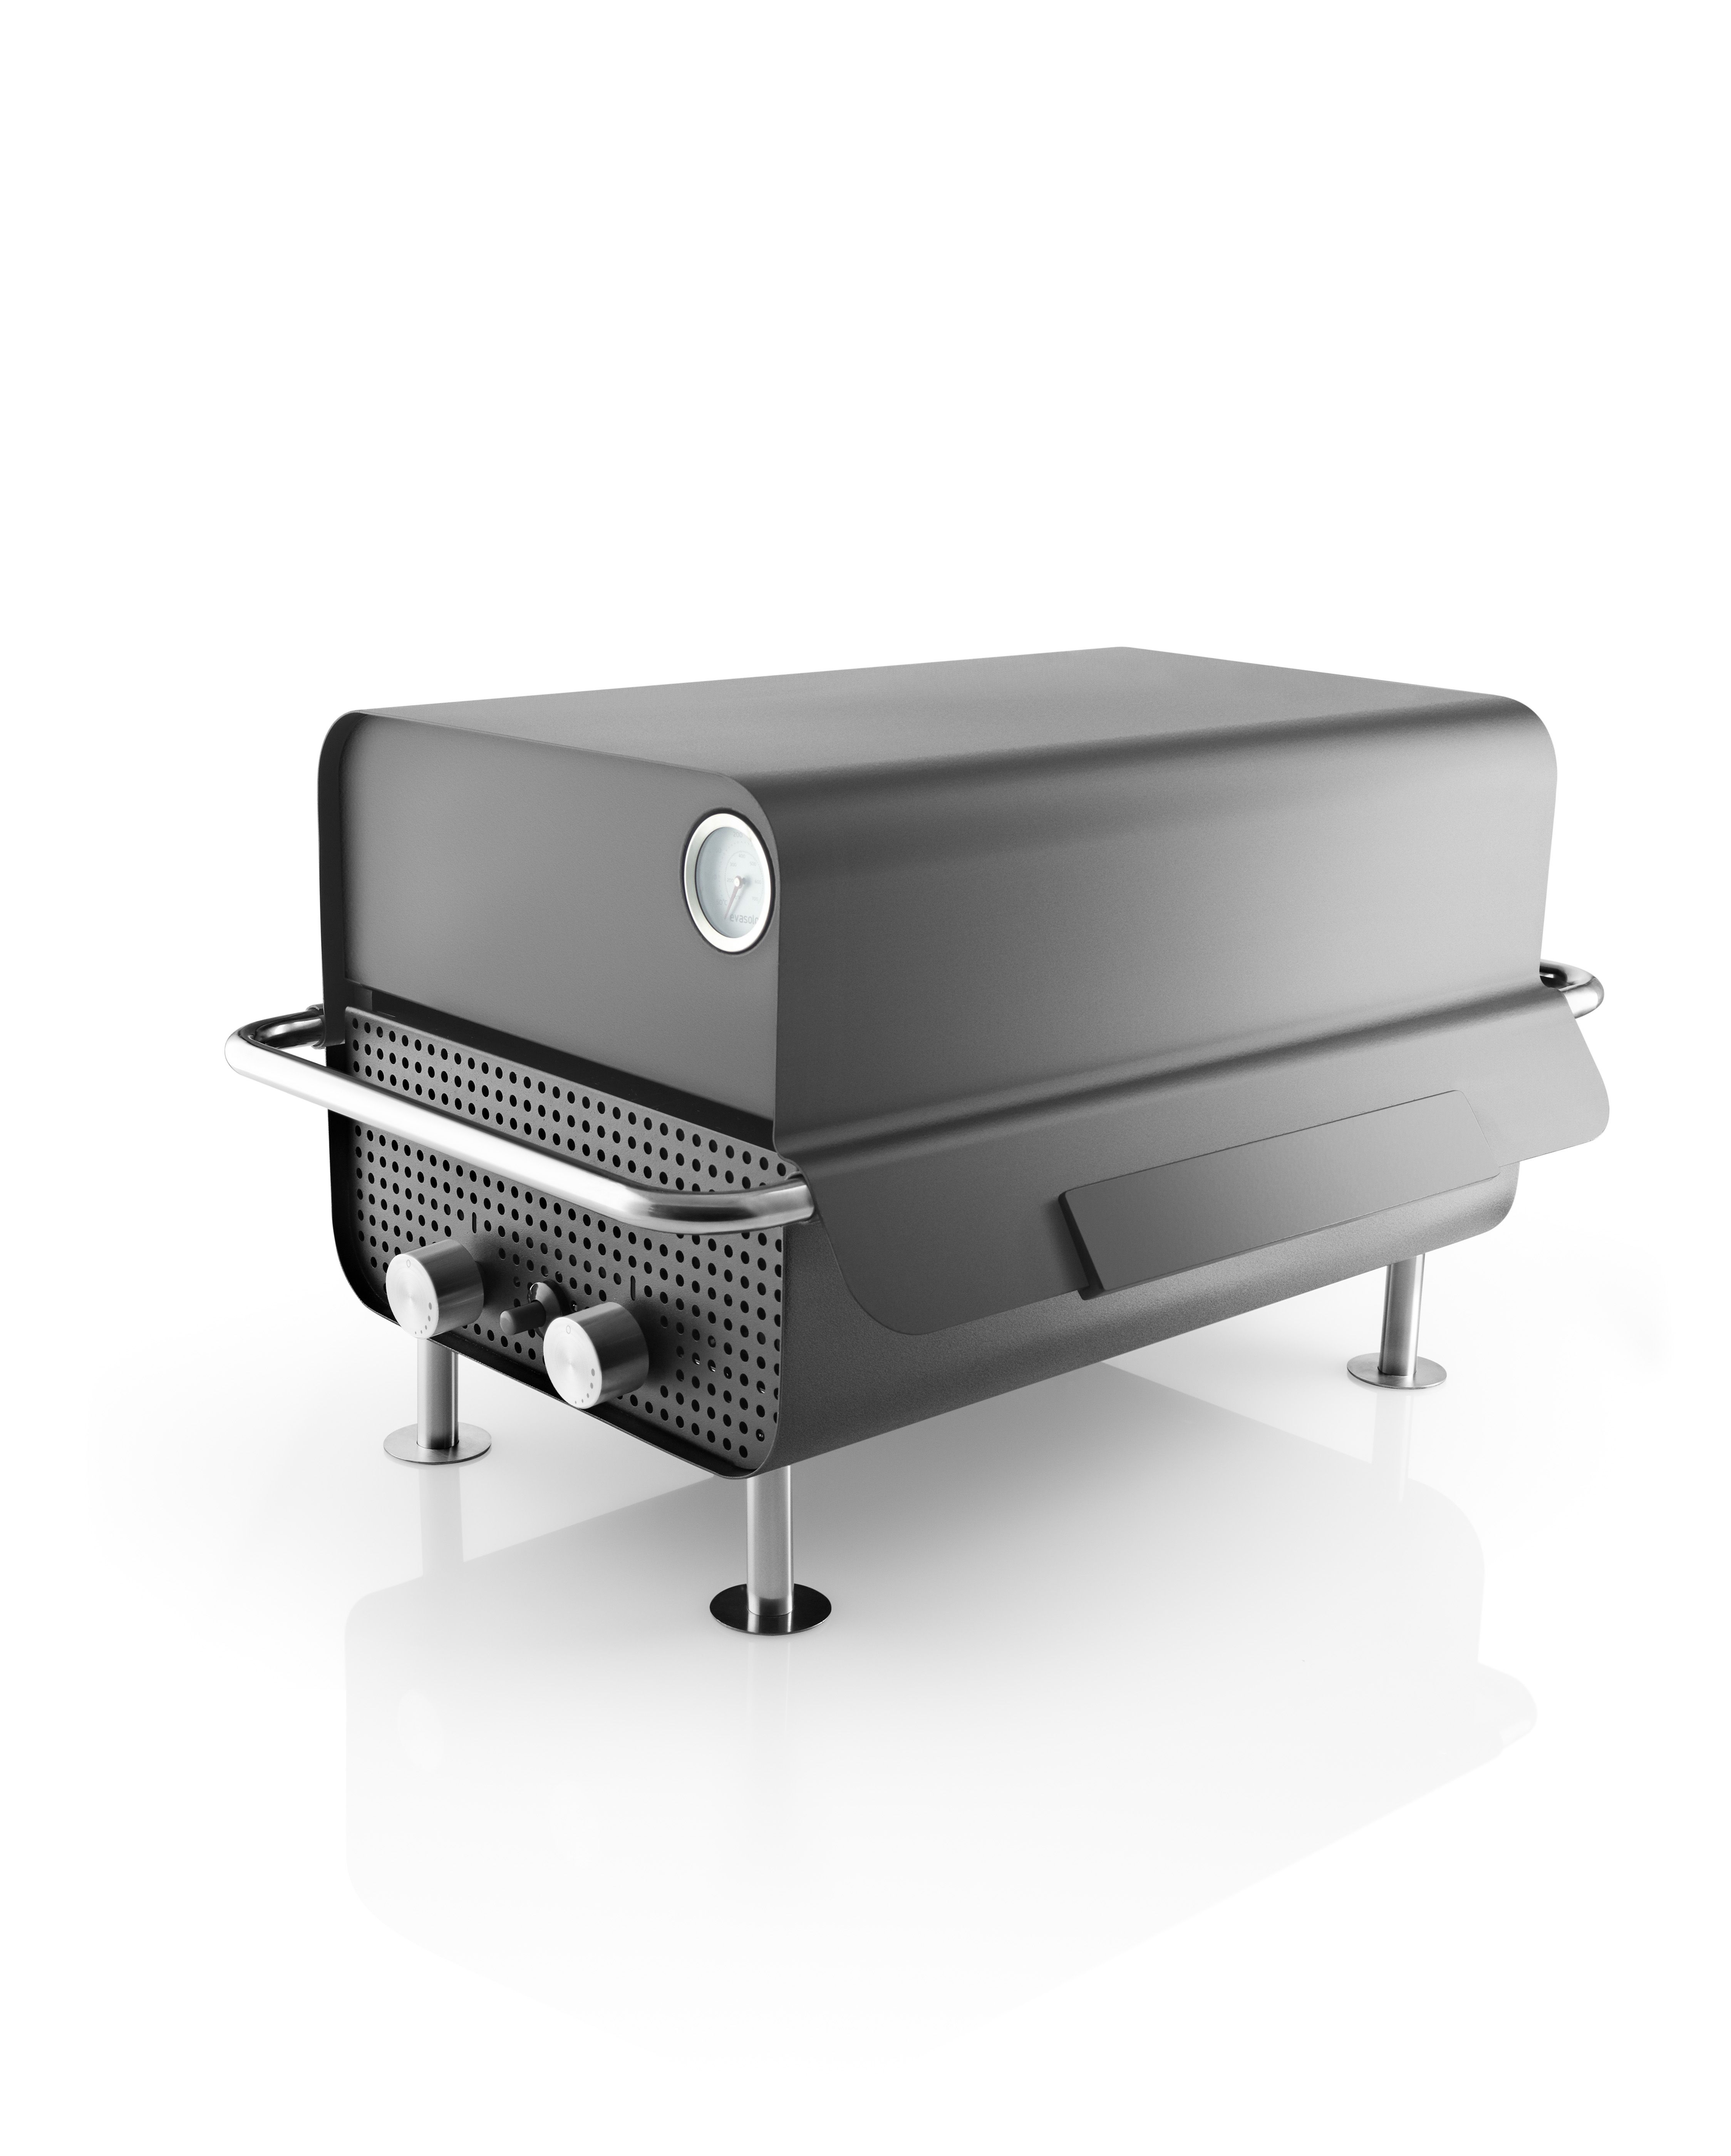 Eva Solo Gasgrill Box Gasgrill By Eva Solo Keep It Simple Timeless